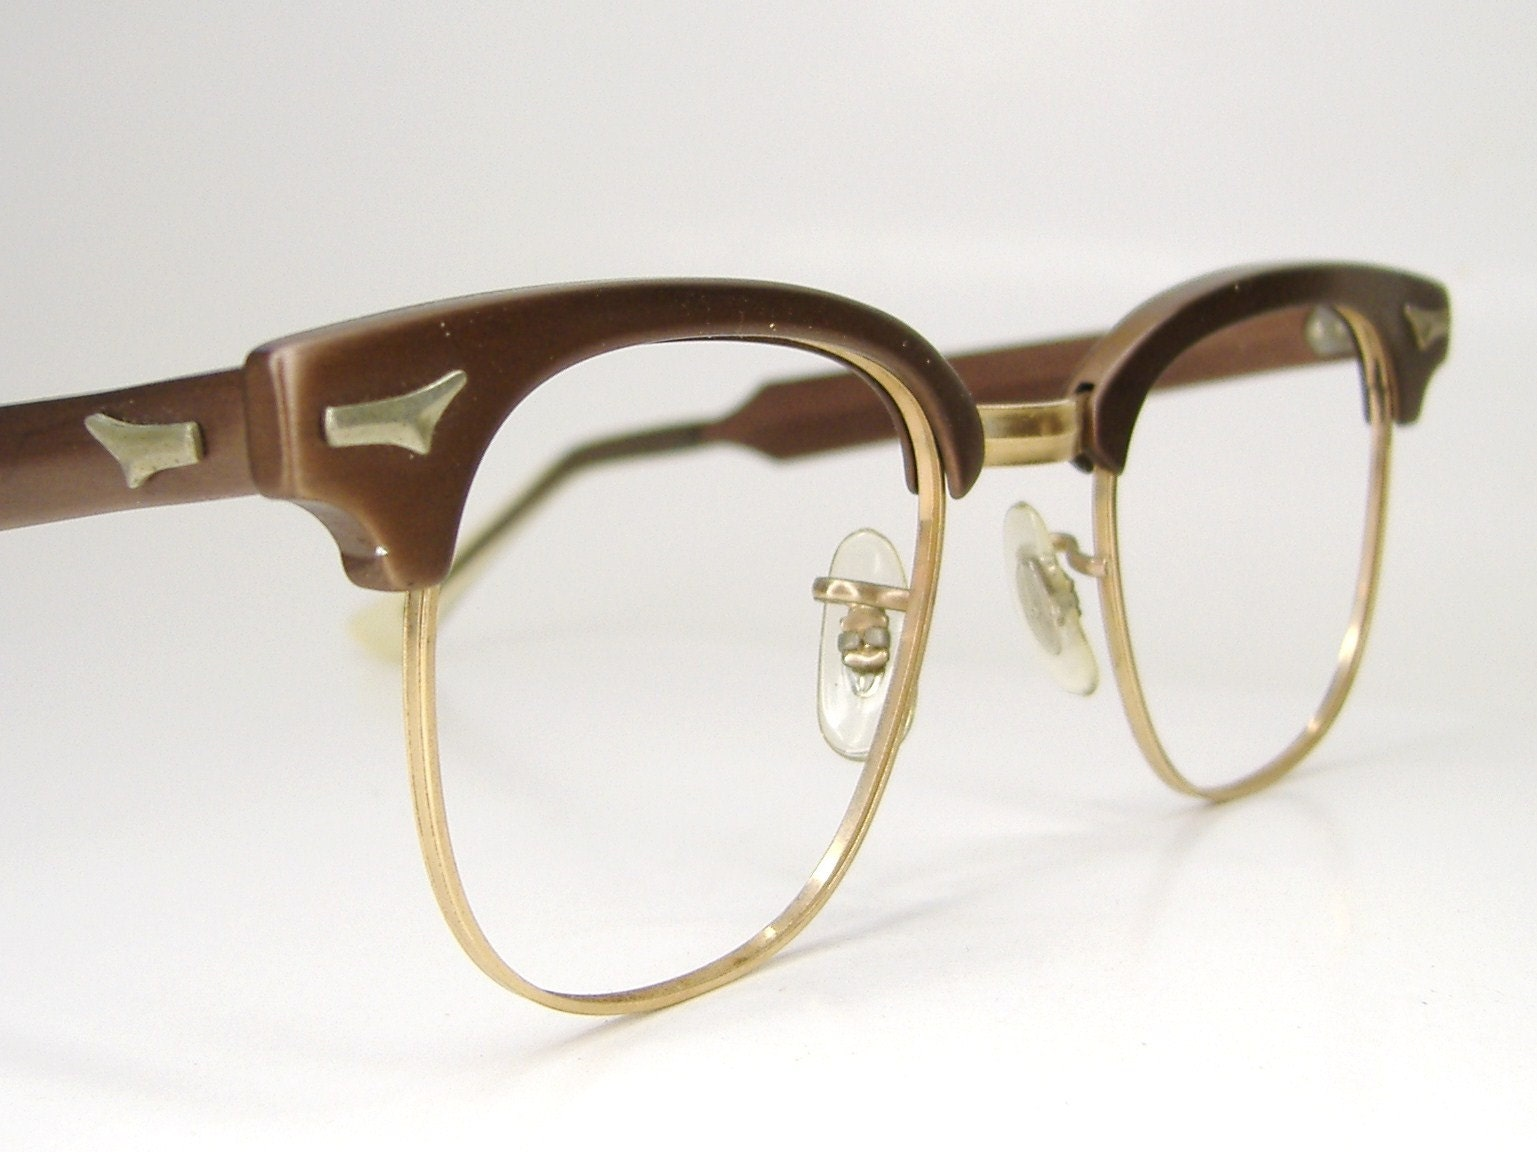 b15fc504563 Eyewear Frames For Men Over 50